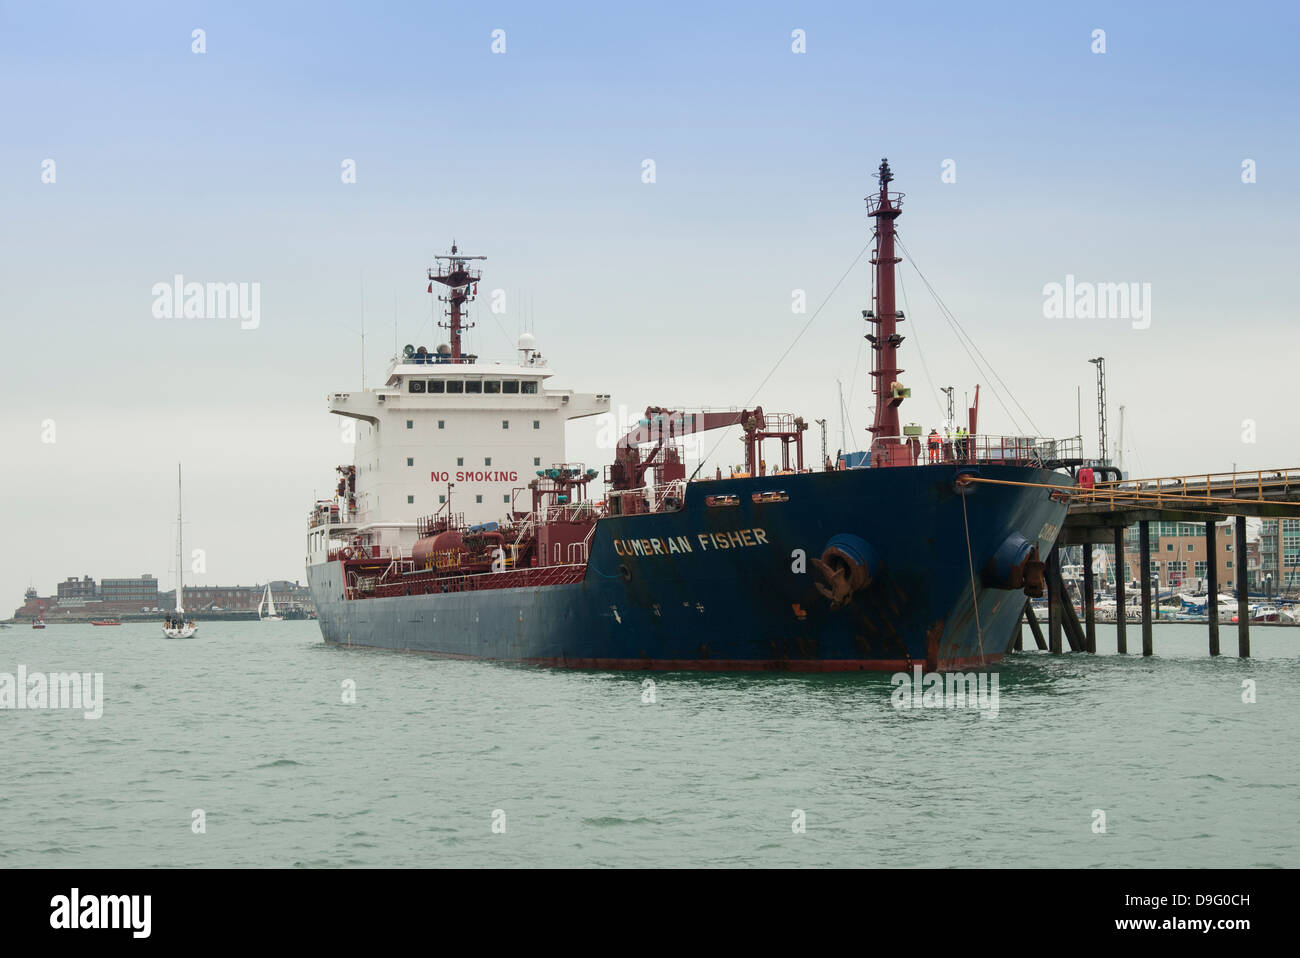 The Cumbrian Fisher oil tanker moored in Portsmouth Harbour, Gosport, UK - Stock Image